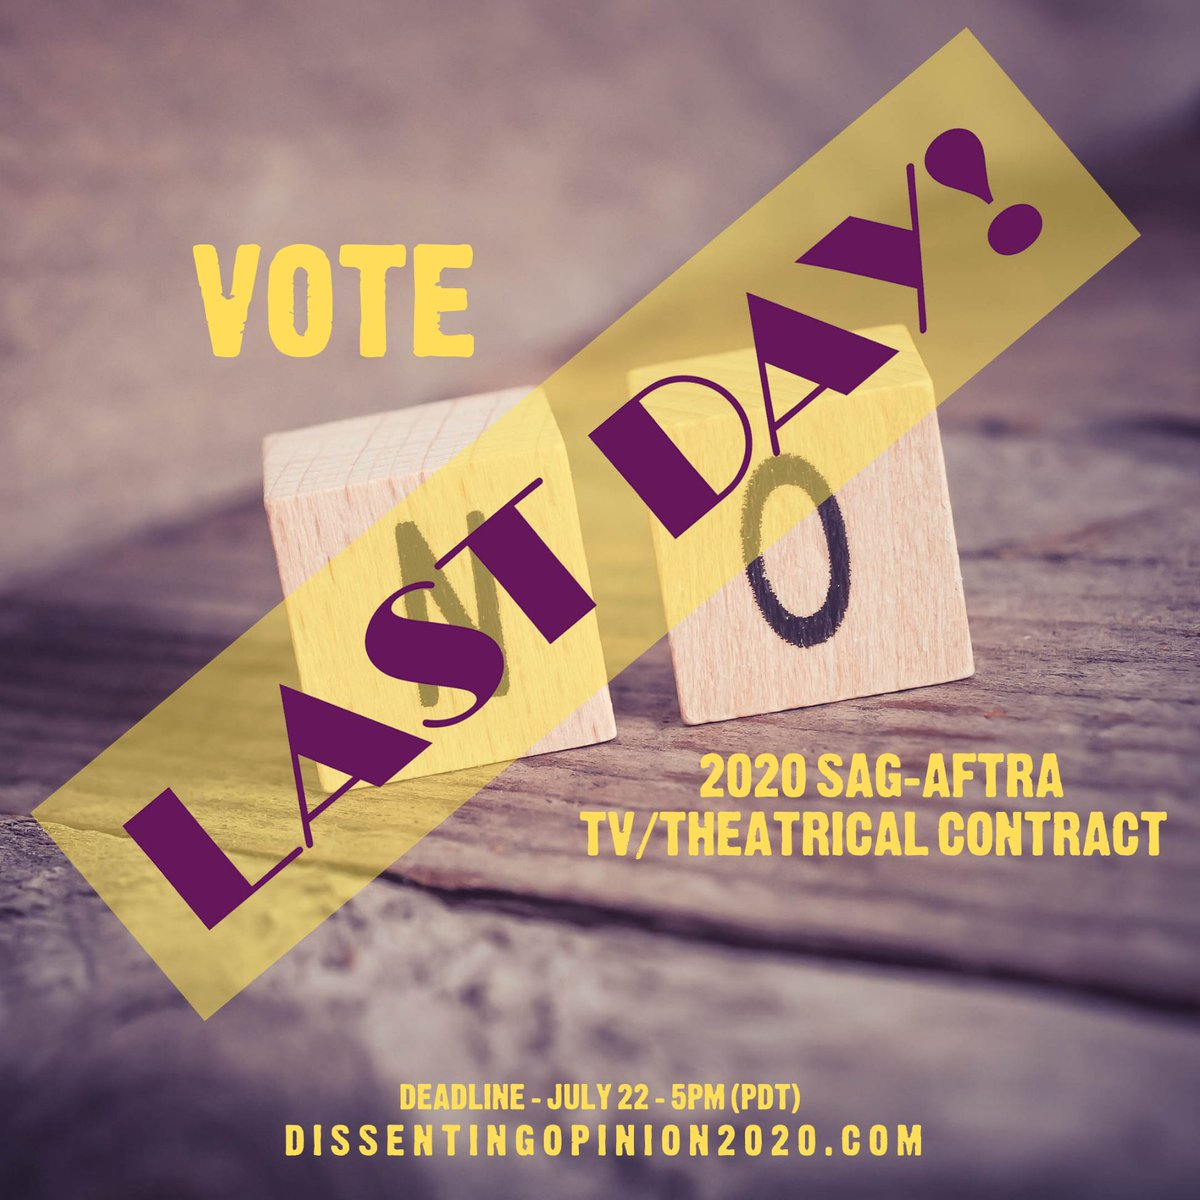 #SAGAFTRAmembers  Today is the LAST DAY to #VoteNO on the Tentative TV/Theatrical Contract.   Votes must be in by 5pm PDT  #DissentingOpinion2020  See:   #VoteNO ✅ is my choice @DO2020VoteNO #SAGAFTRA #streamingforward #contract2020